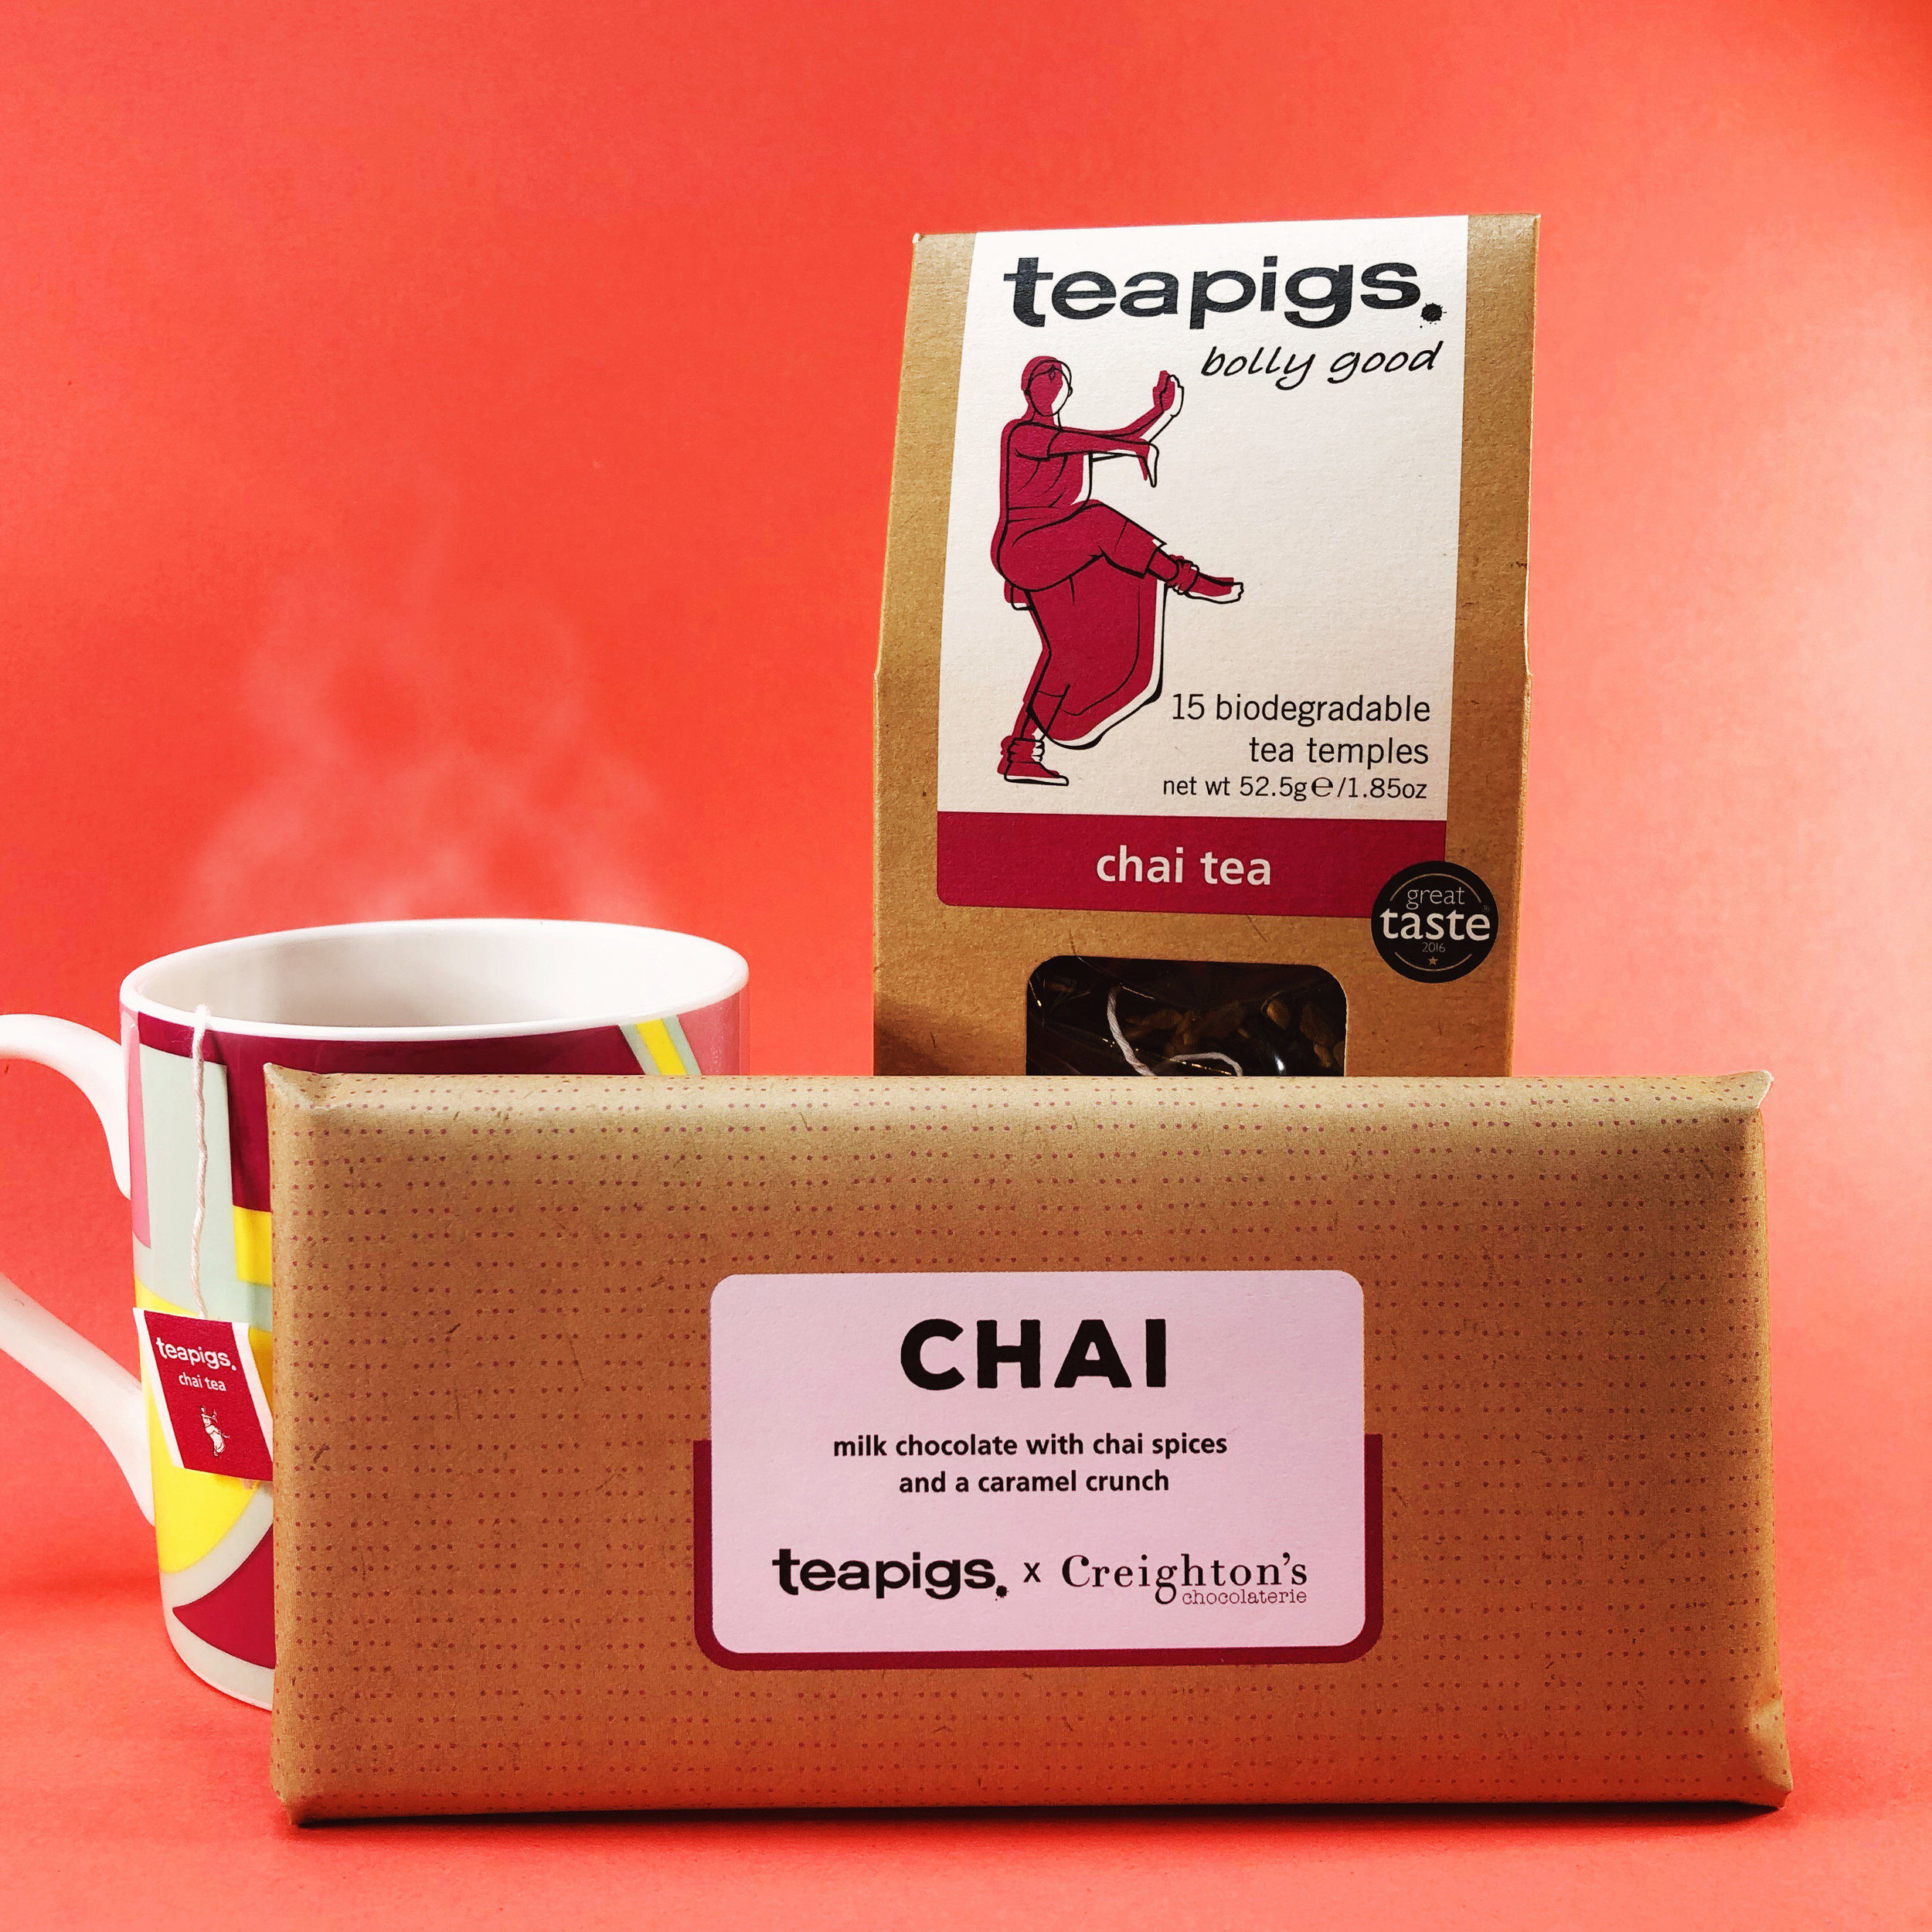 teapigs x Creighton's chocolaterie Chai with chai spices and caramel crunch